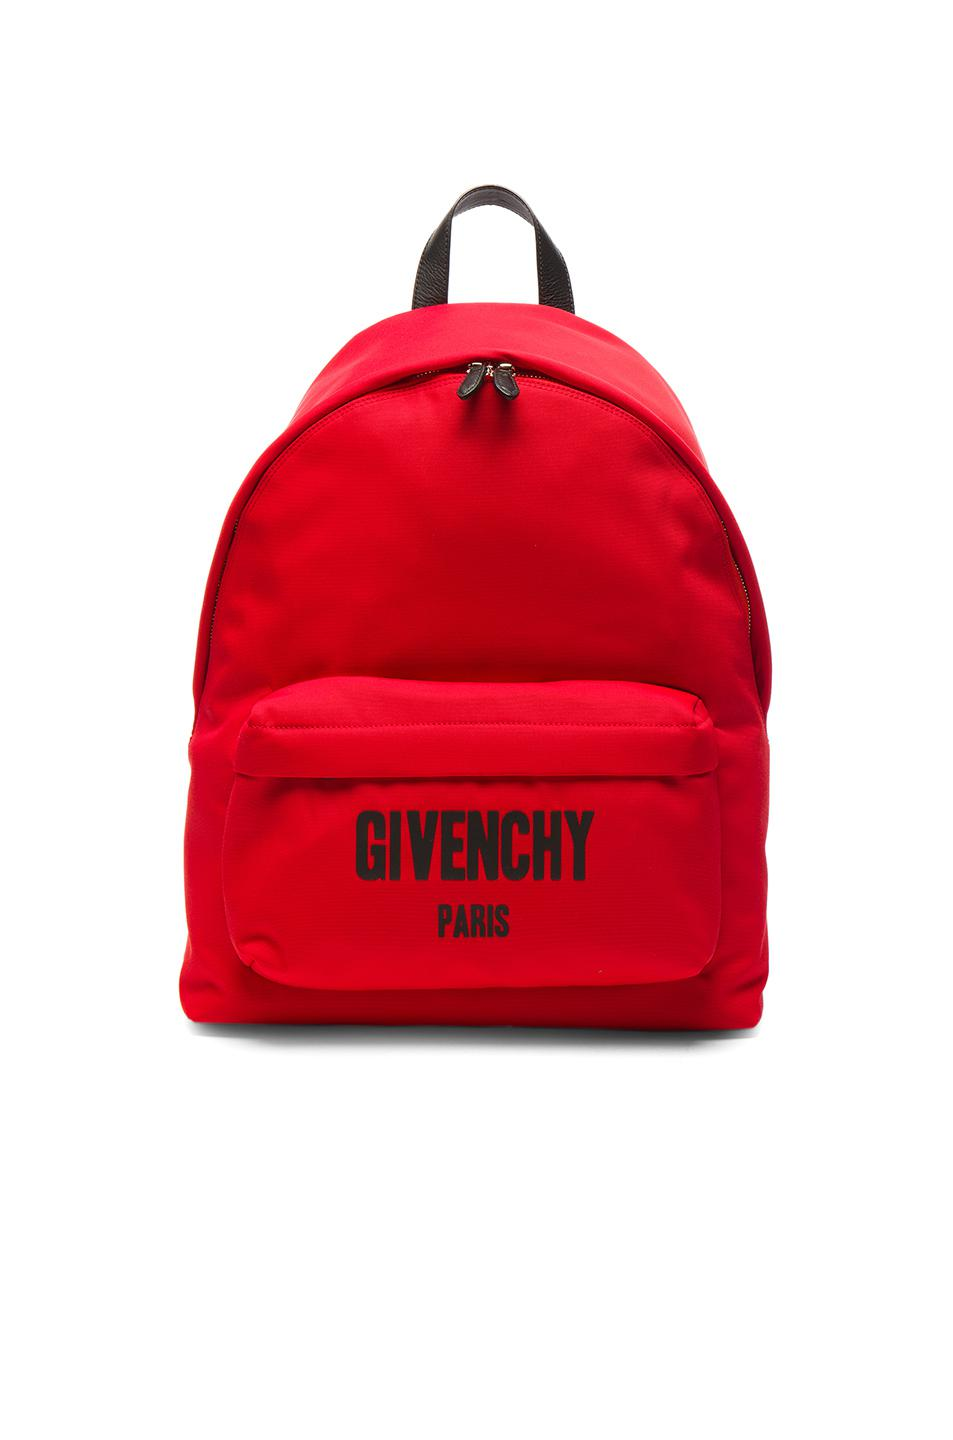 2dc39dd75a Givenchy Backpack in Red - Lyst